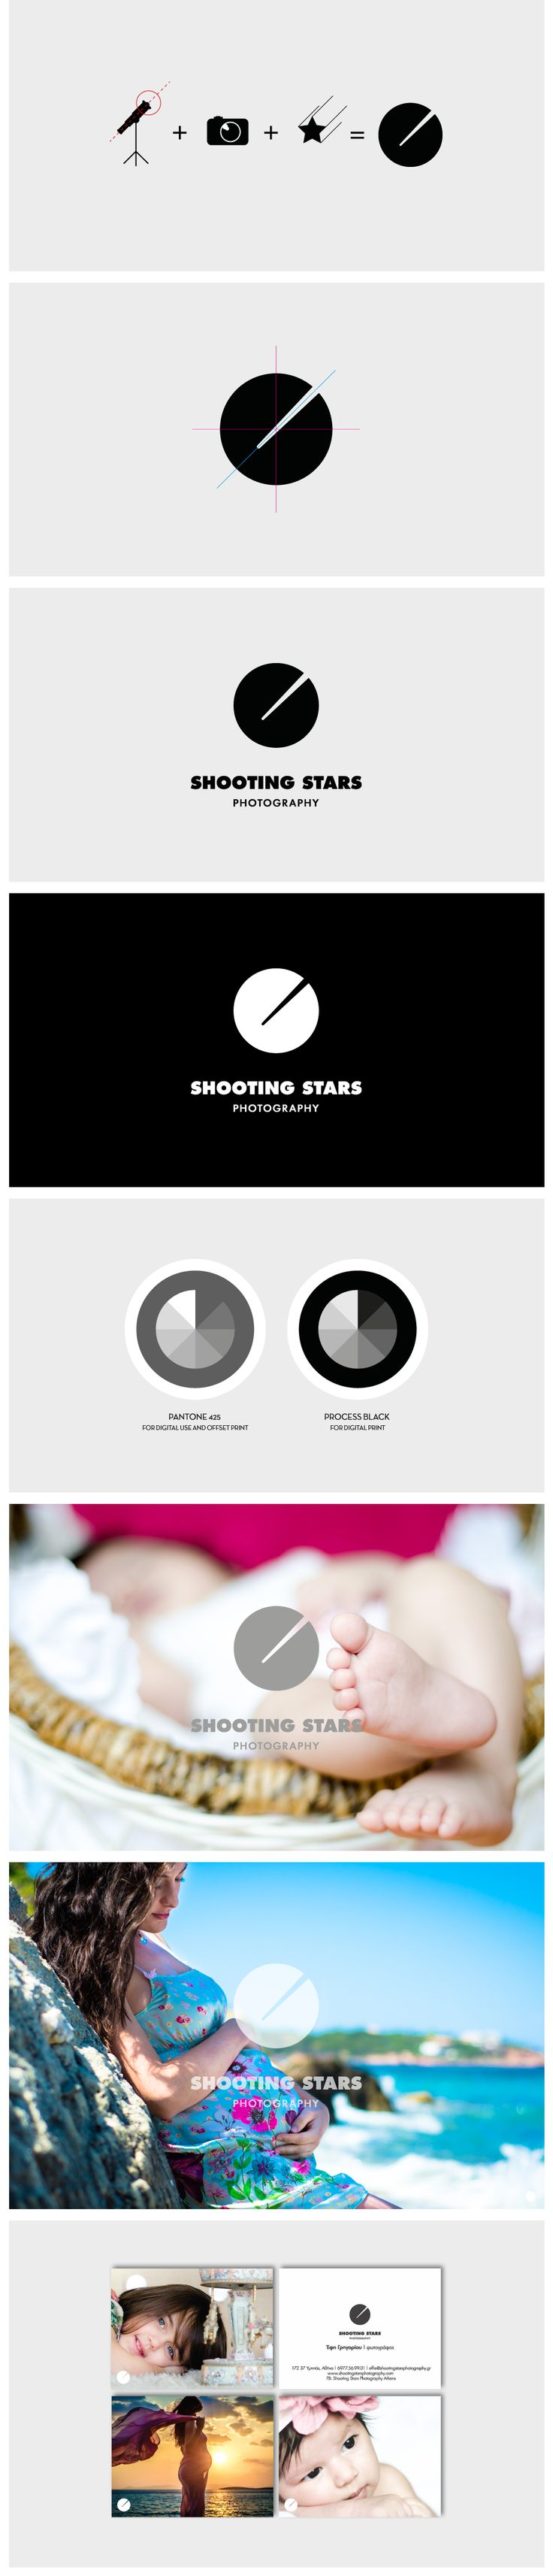 Shooting Stars photography asked us to design a logo that could decorate their wonderful portrait photography. The symbol is based on a shooting star as it goes through the photographer's lens.   #logo by comeback studio http://www.comebackstudio.com/portfolio/shooting-stars-photography-logo/